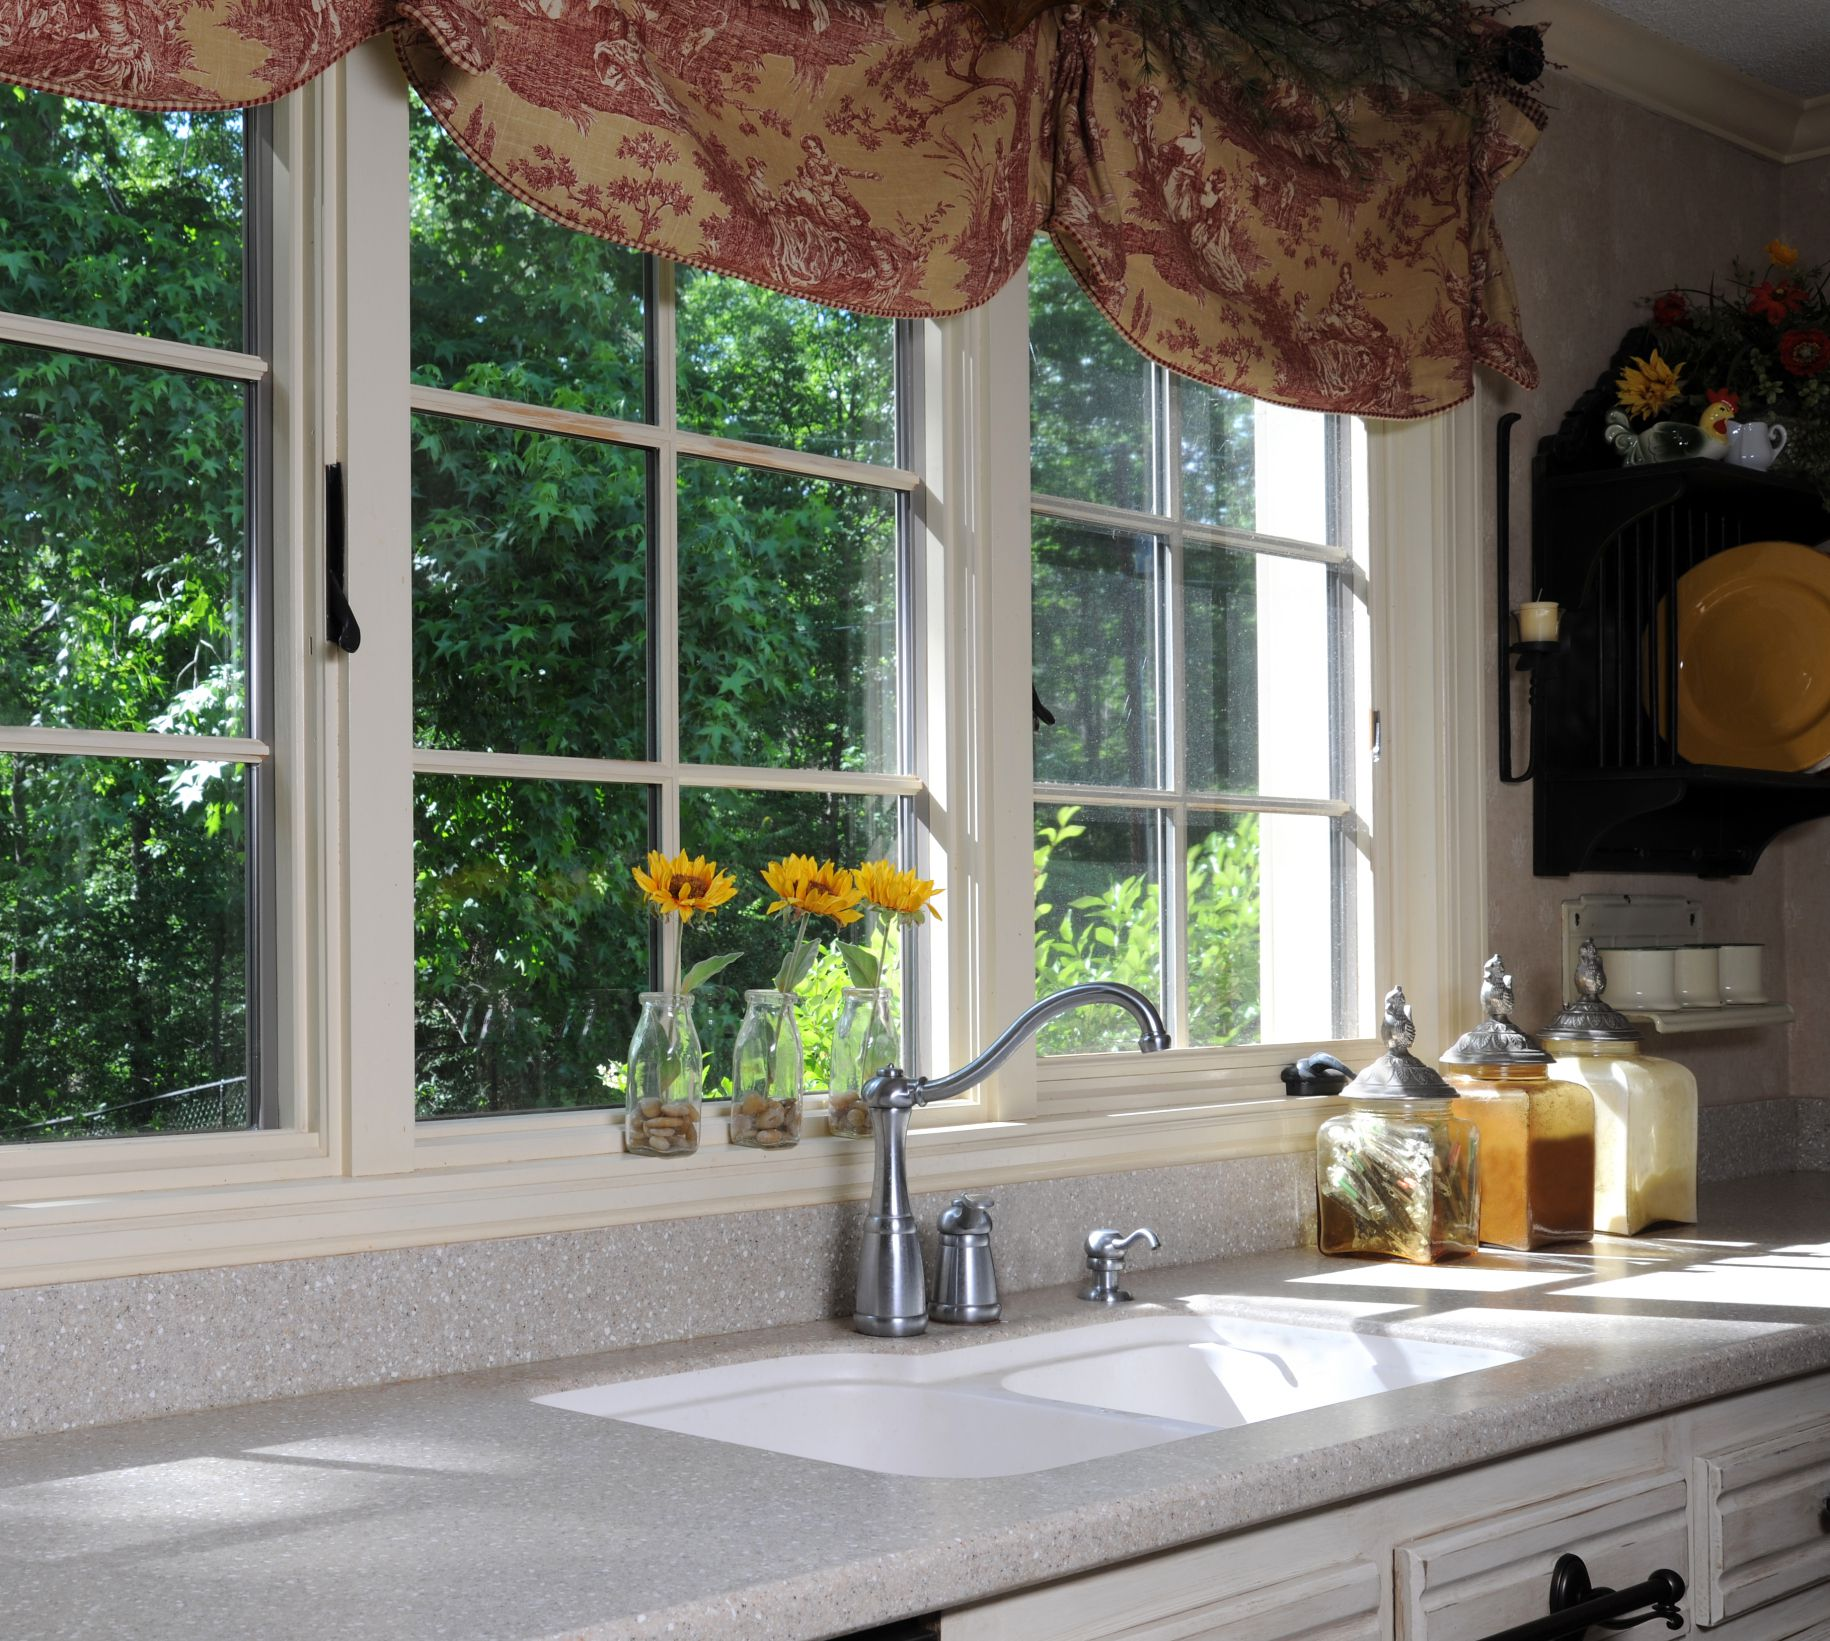 Kitchen Window Furnishings Ideas: 4 Kitchen Window Ideas To Get A Unique And Interesting